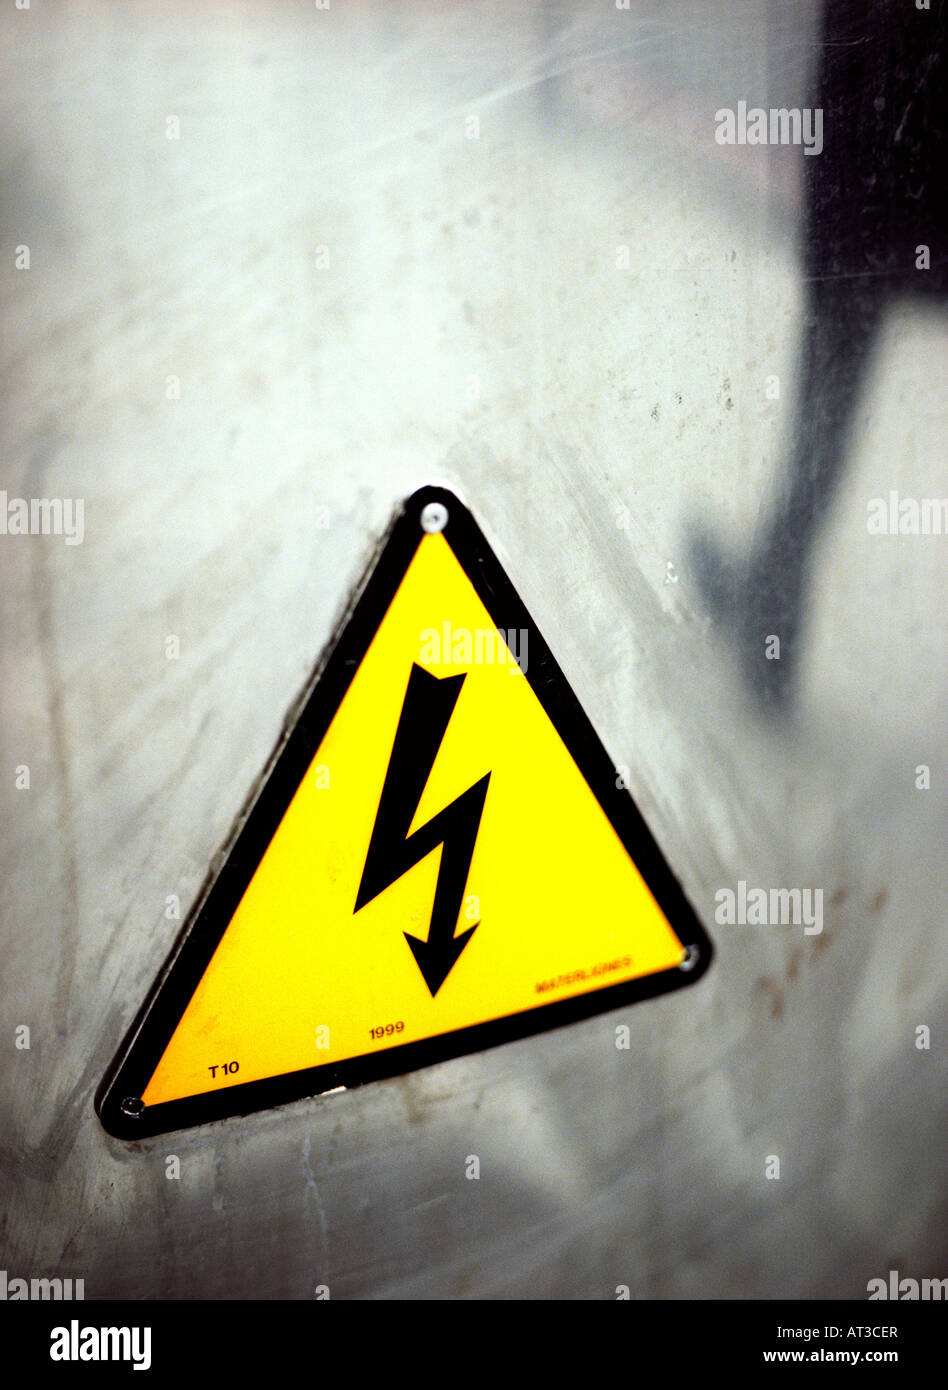 An electric warning sign - Stock Image